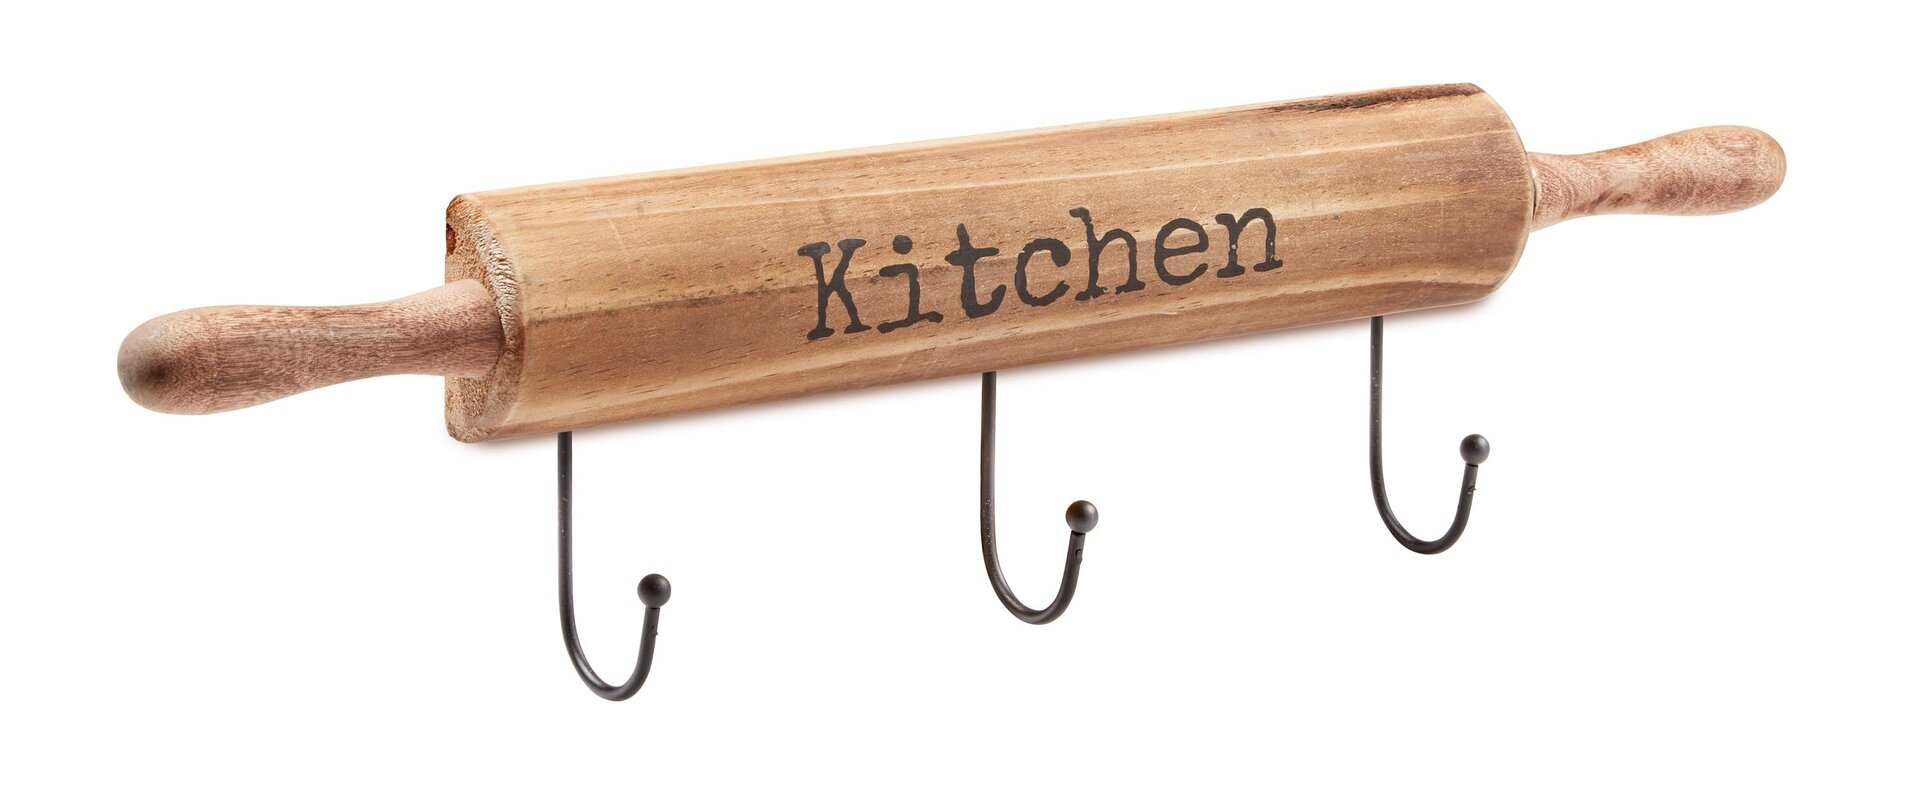 Kitchen Wall Mounted Pot Rack For Hotpads And Utensils